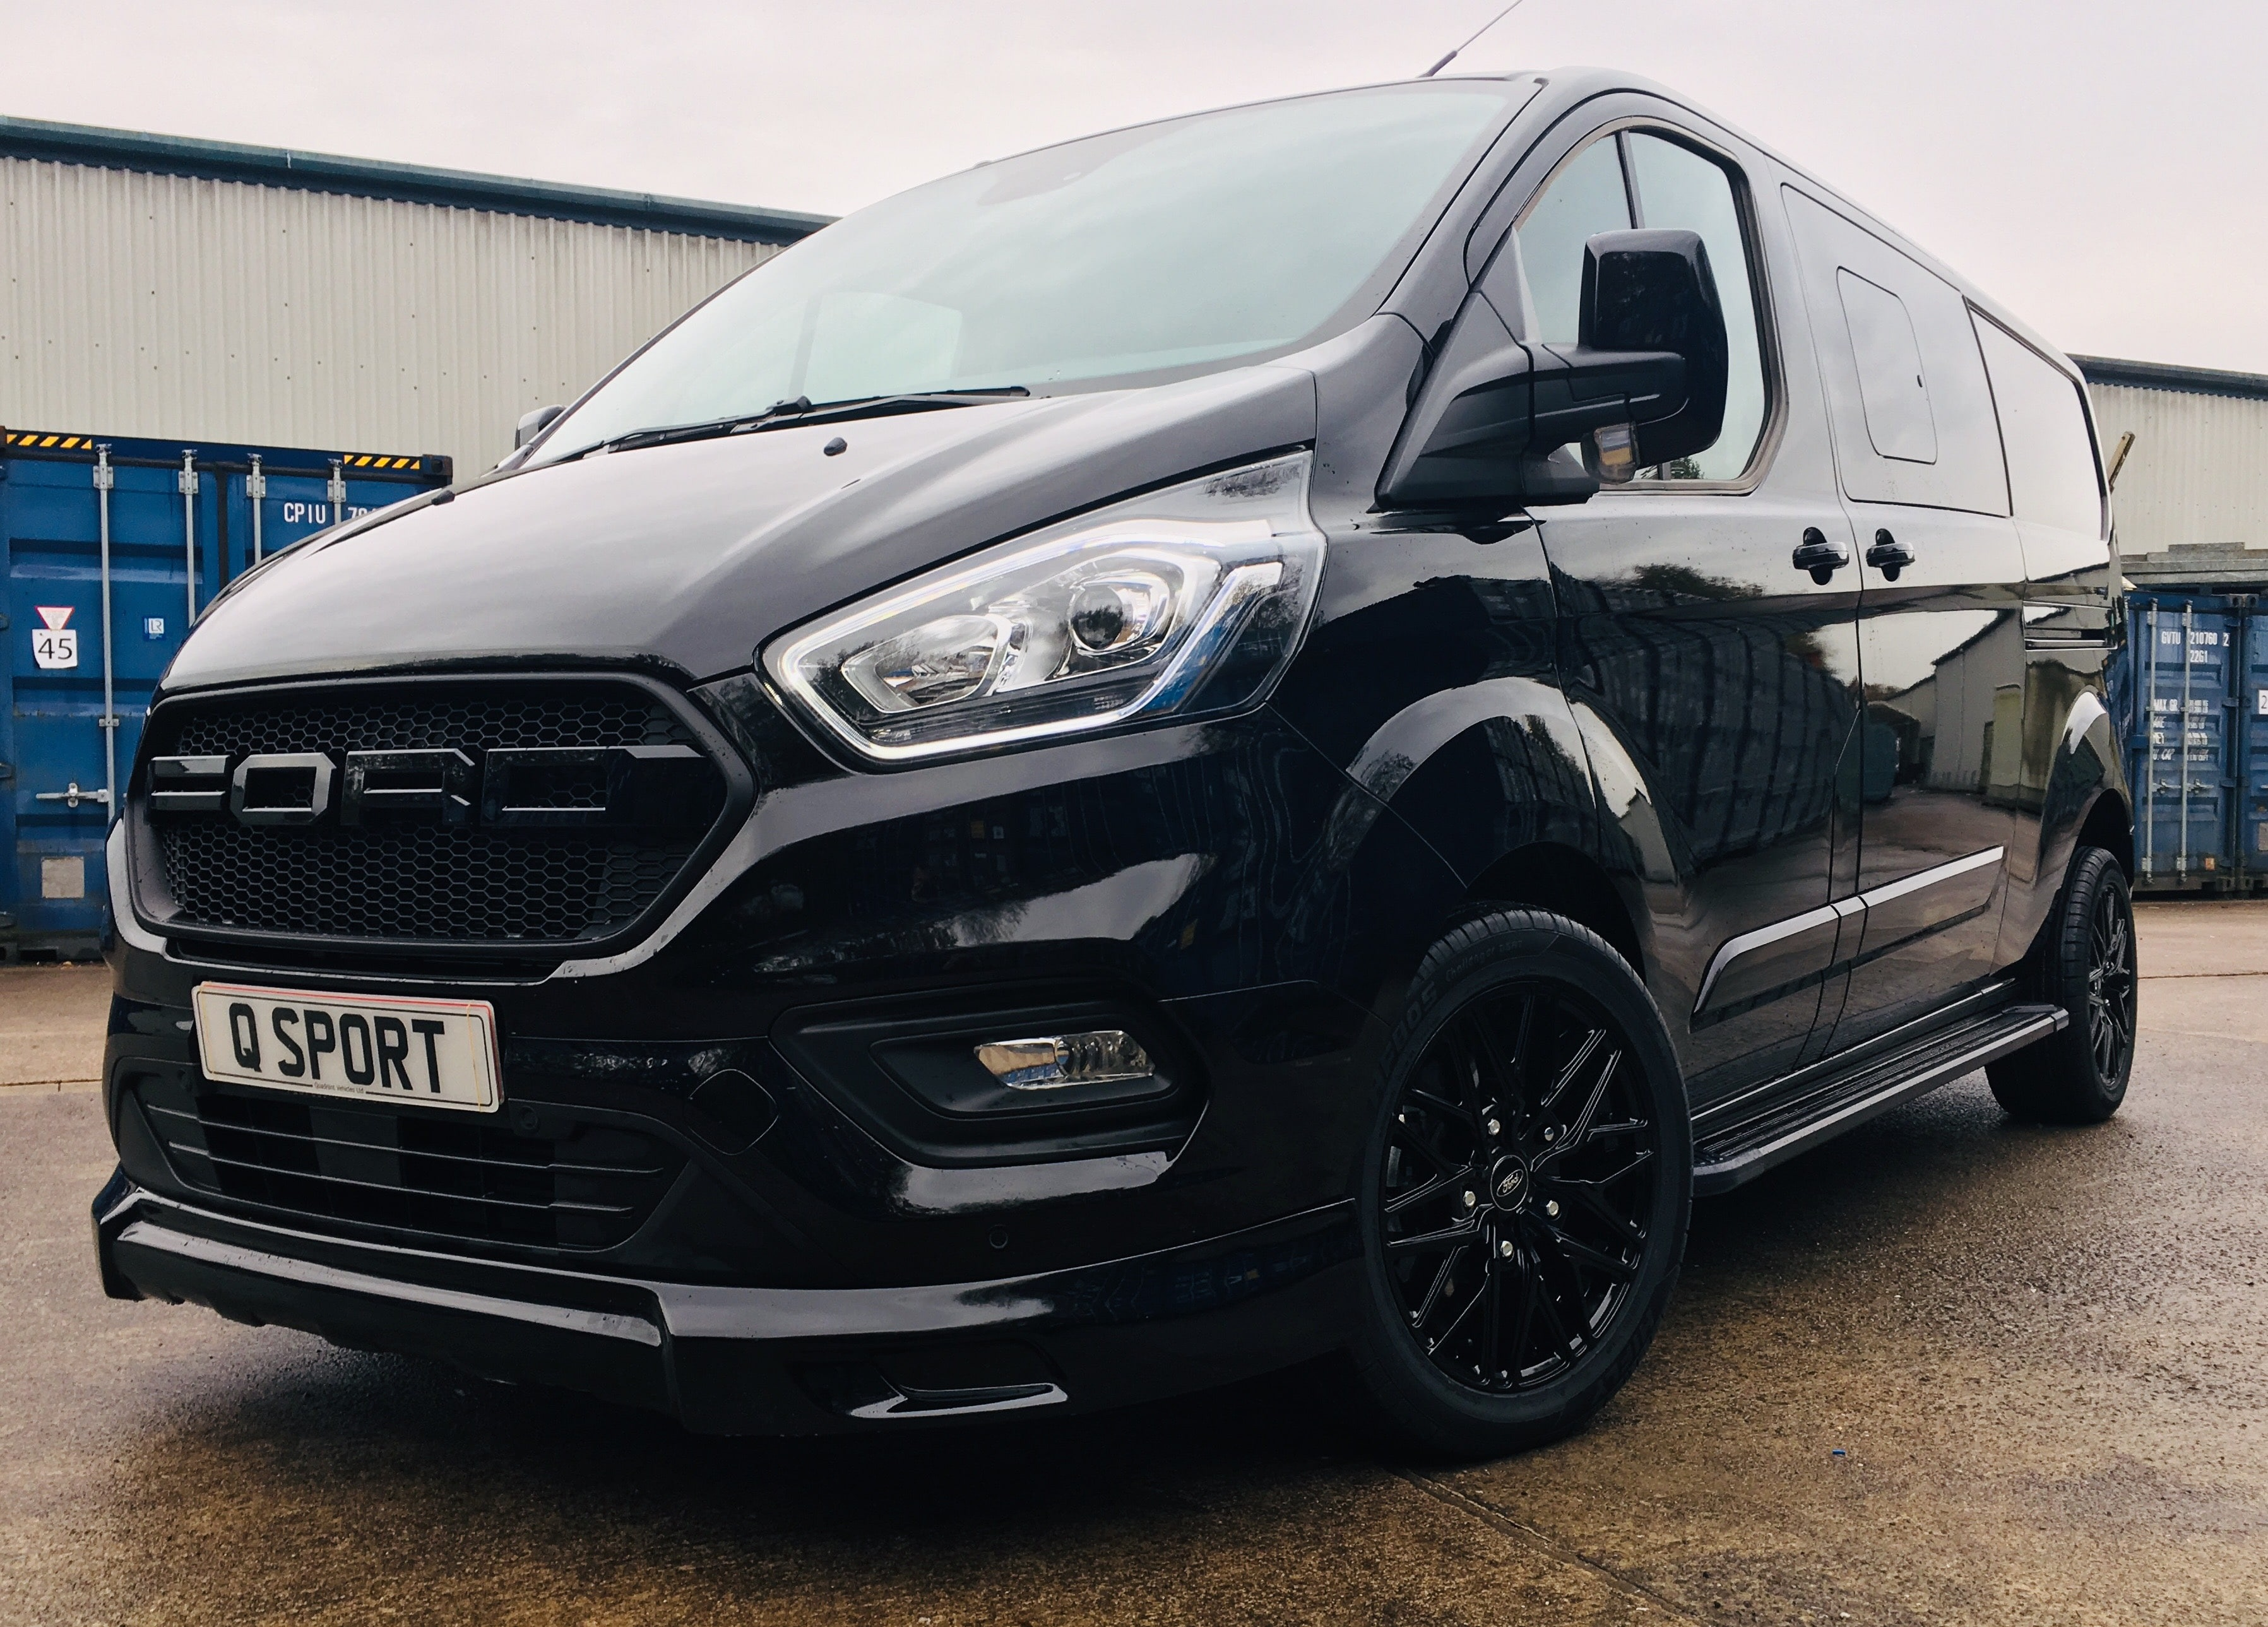 Ford Transit Custom Q Sport with Ford Grille - Up Close - Quadrant Vehicles